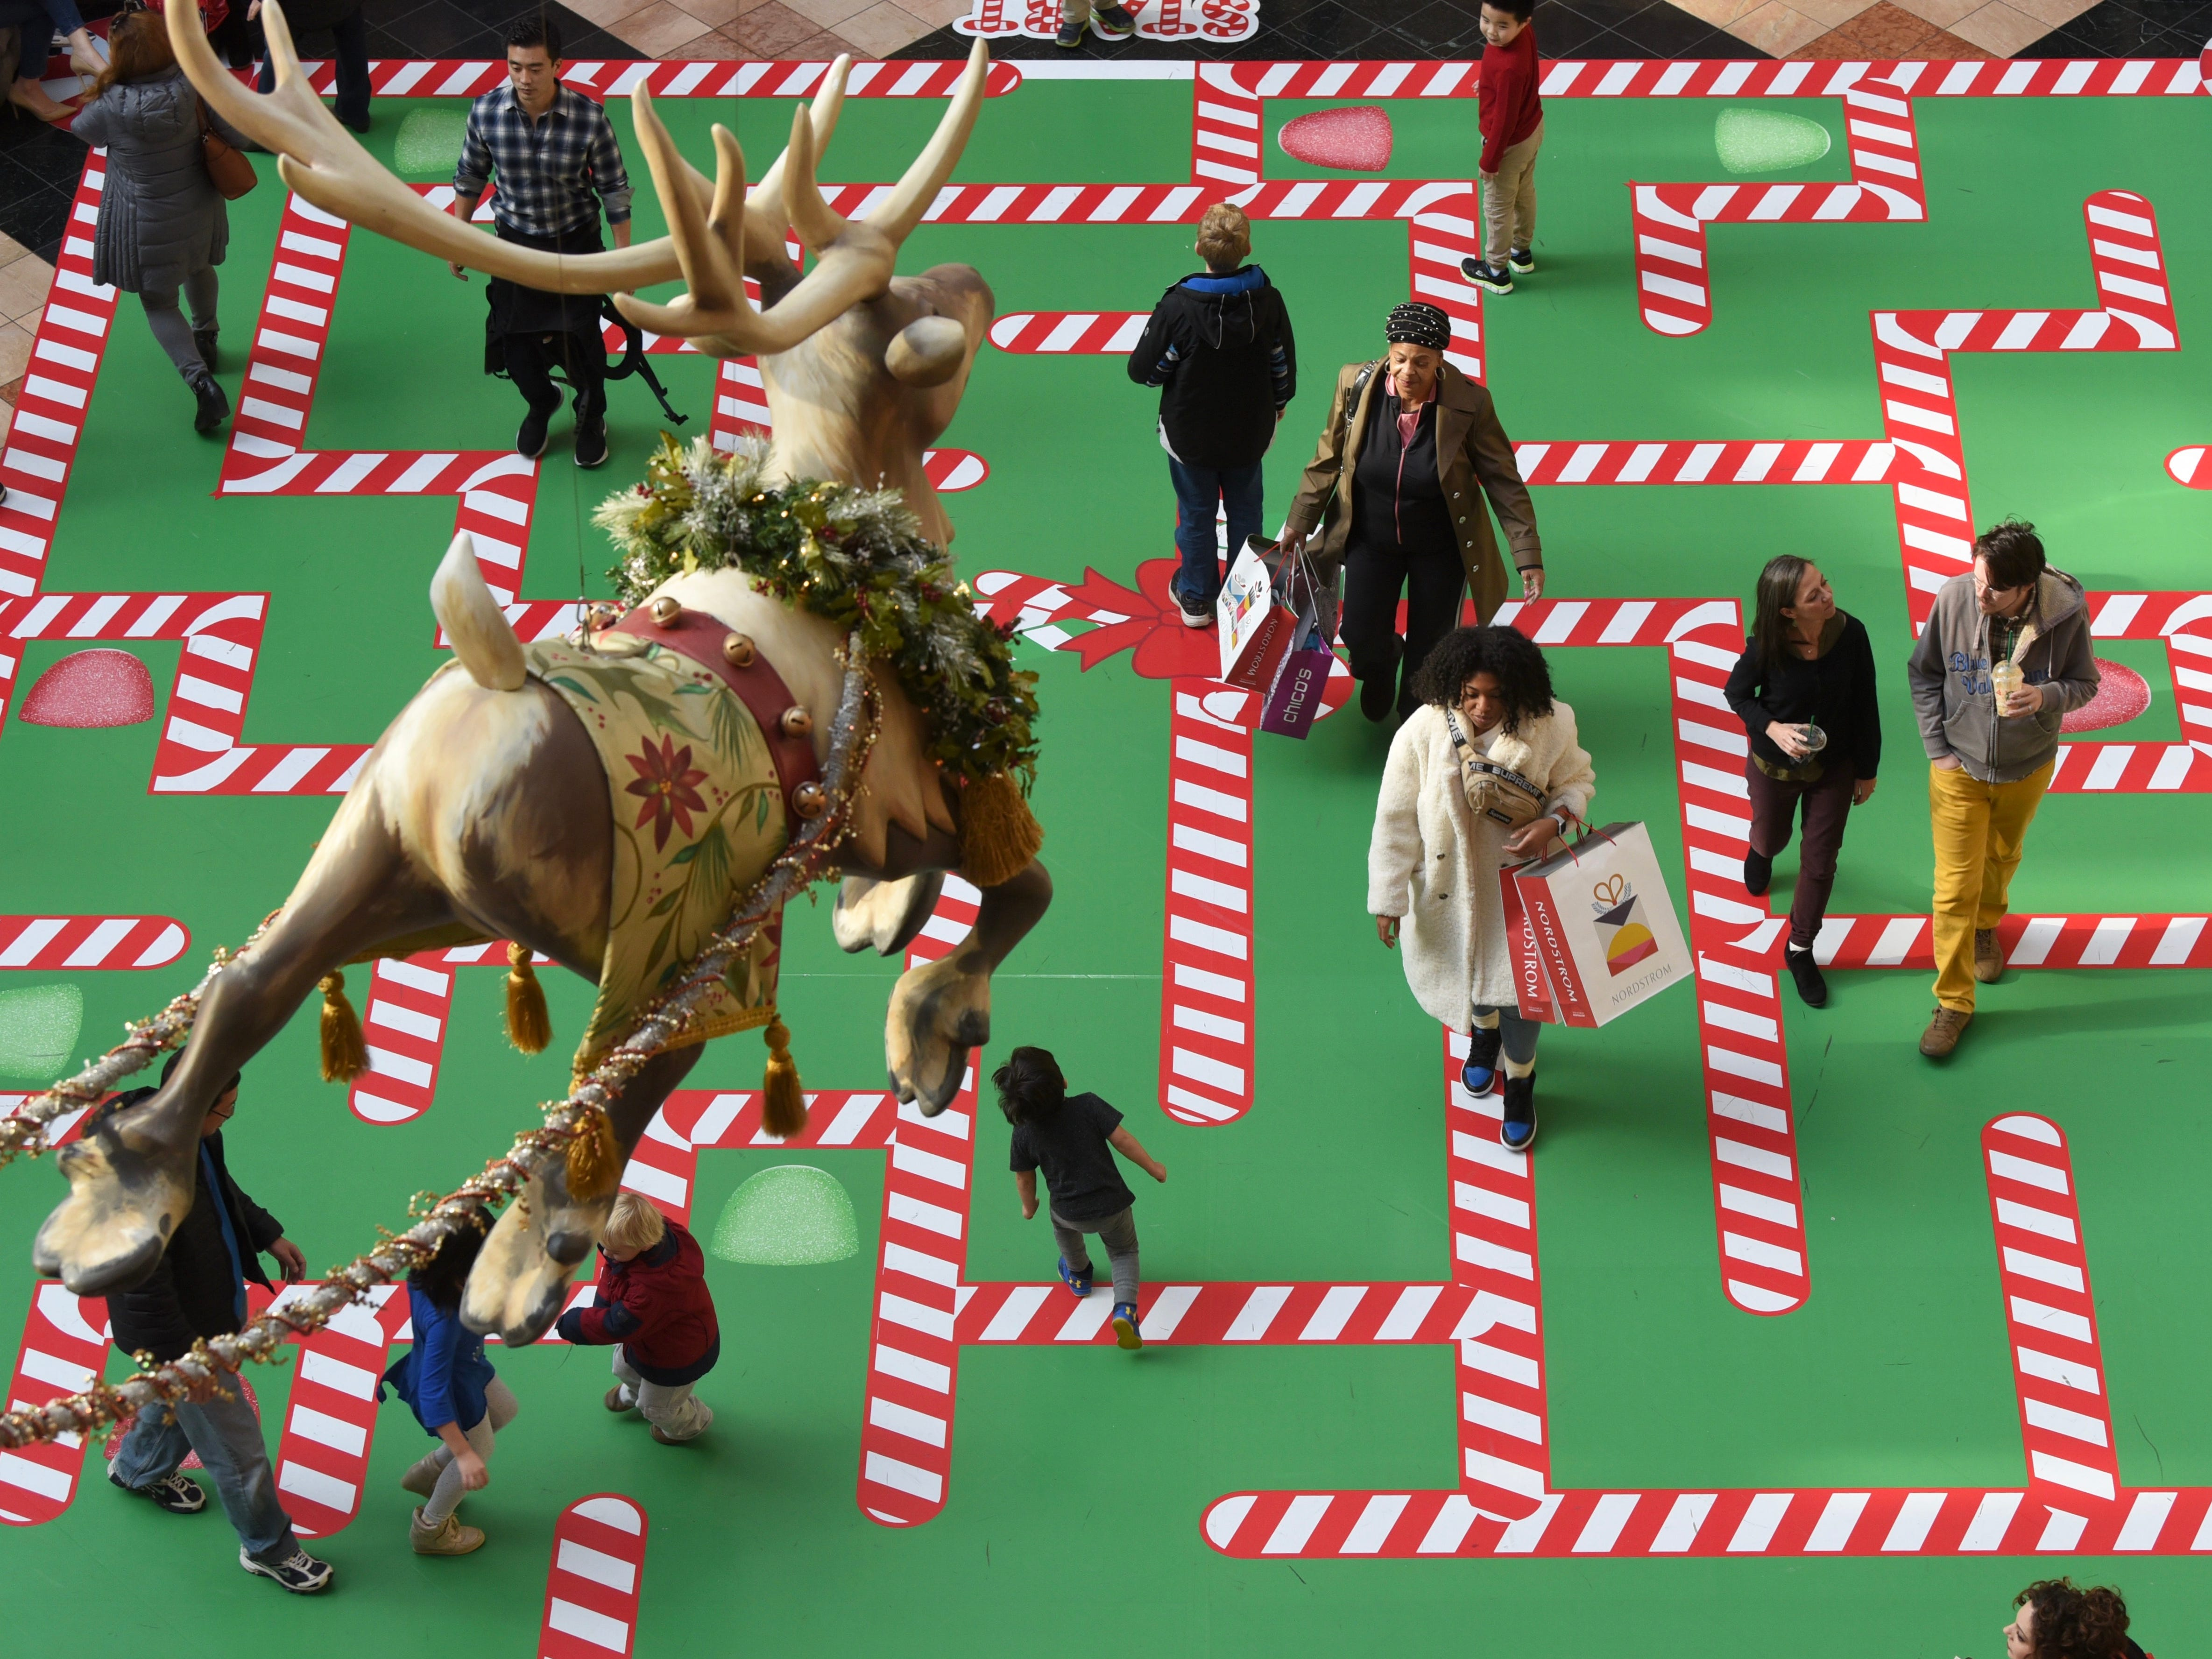 Black Friday shoppers maneuver through a candy cane maze at the Somerset Collection in Troy on Friday, November 23, 2018.